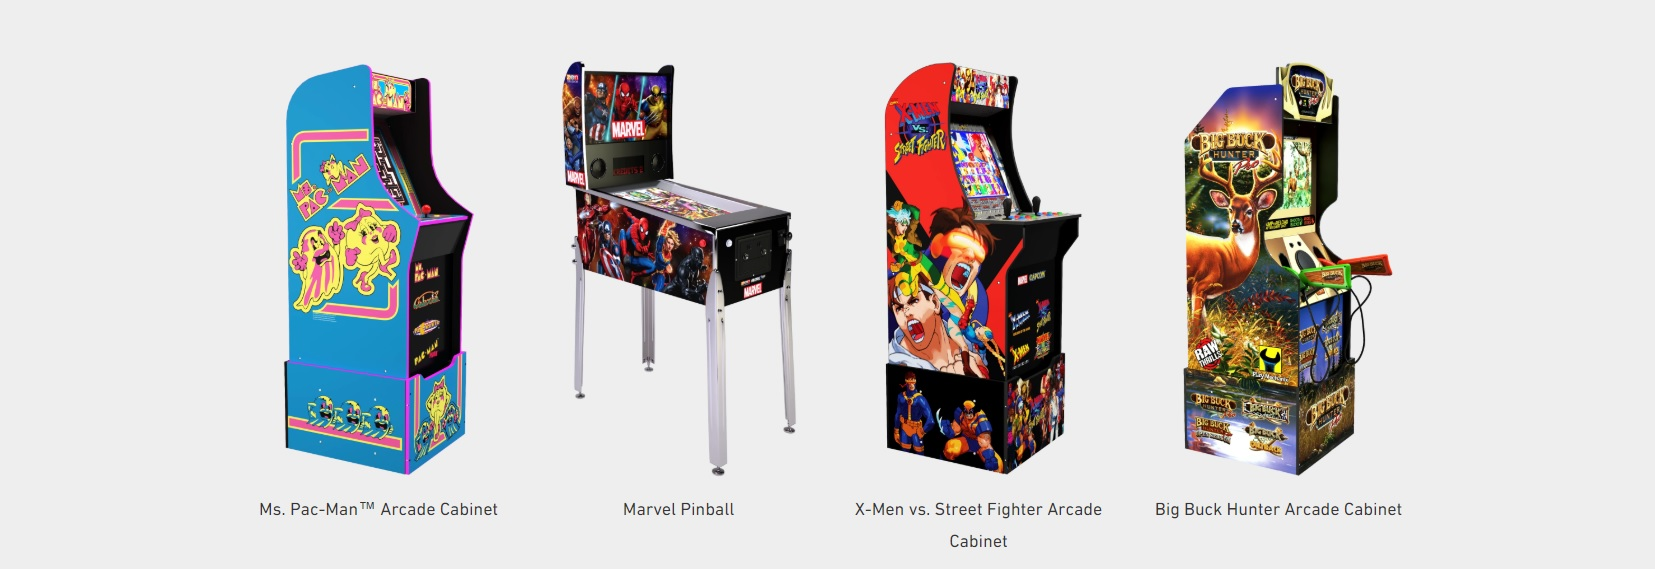 Arcade1Up's newest lineup of arcade releases.